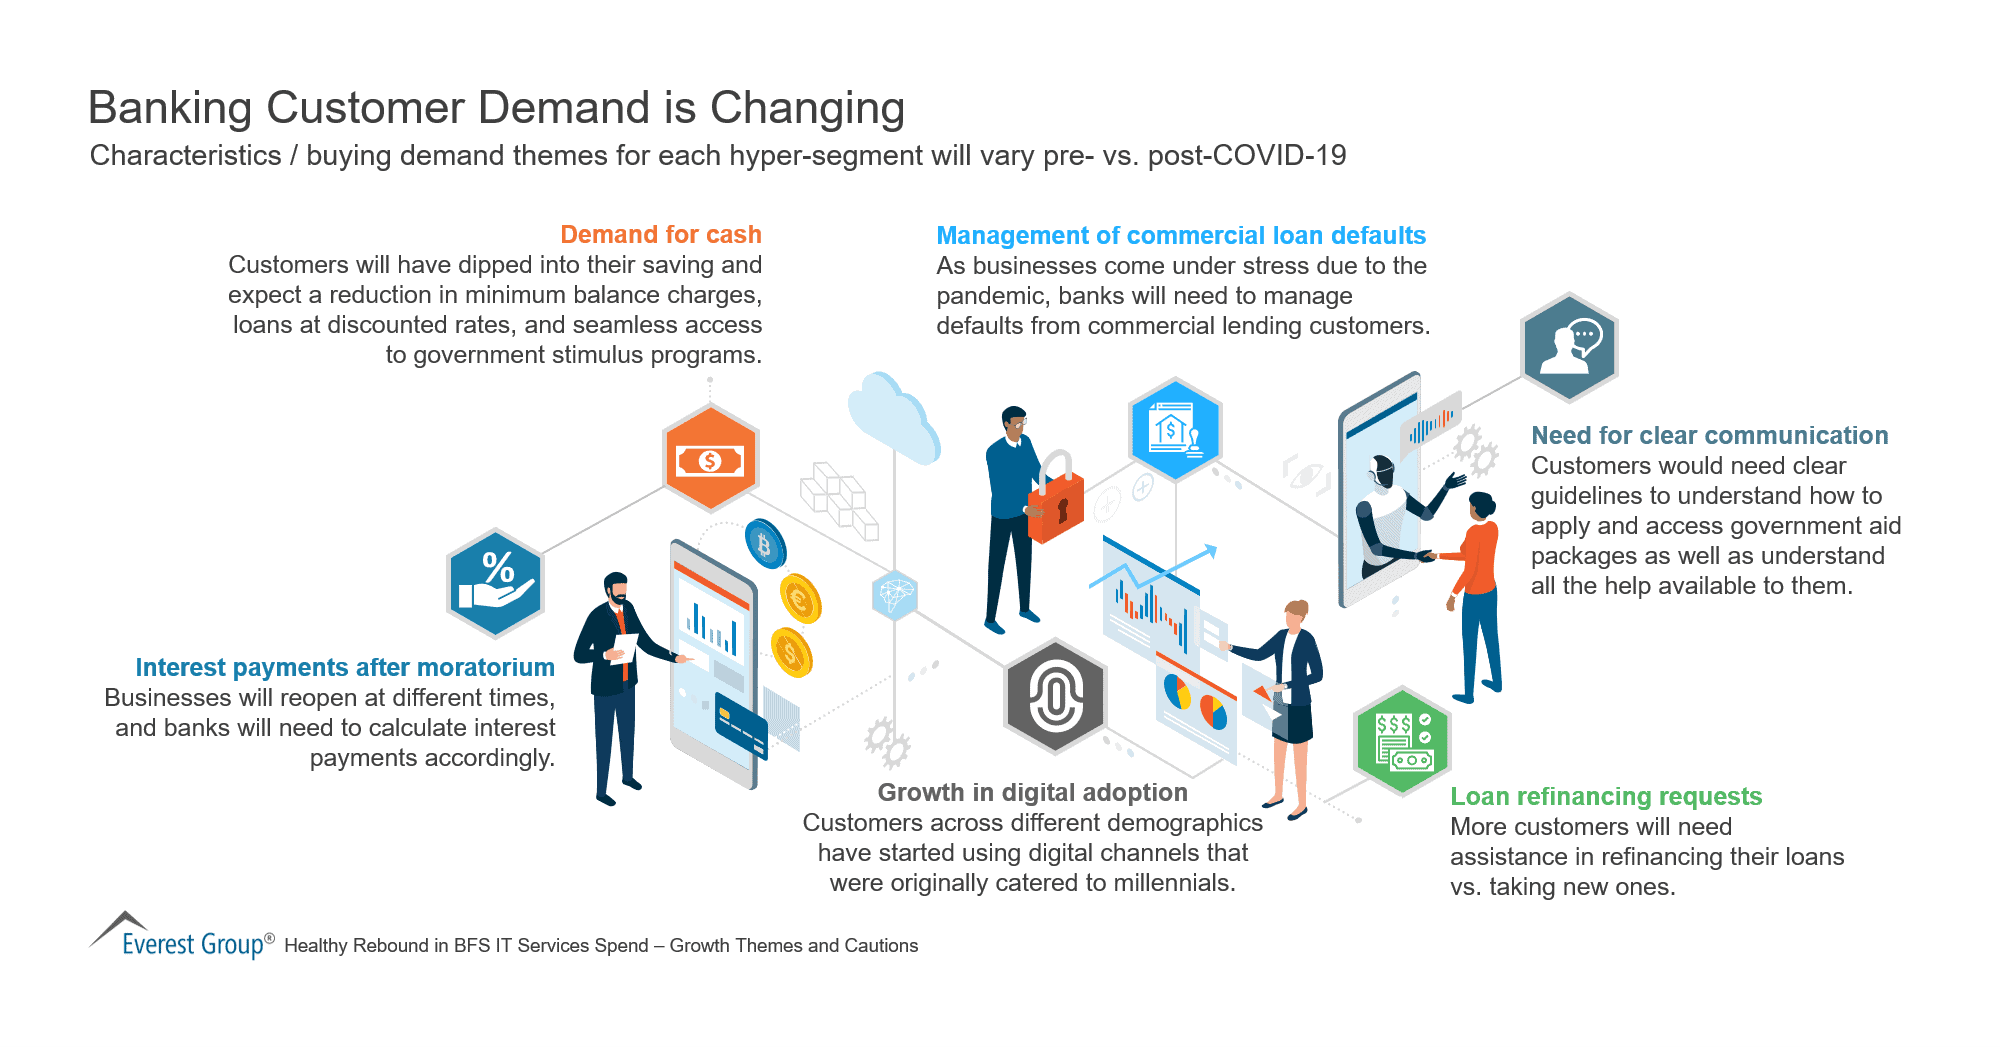 Banking Customer Demand is Changing